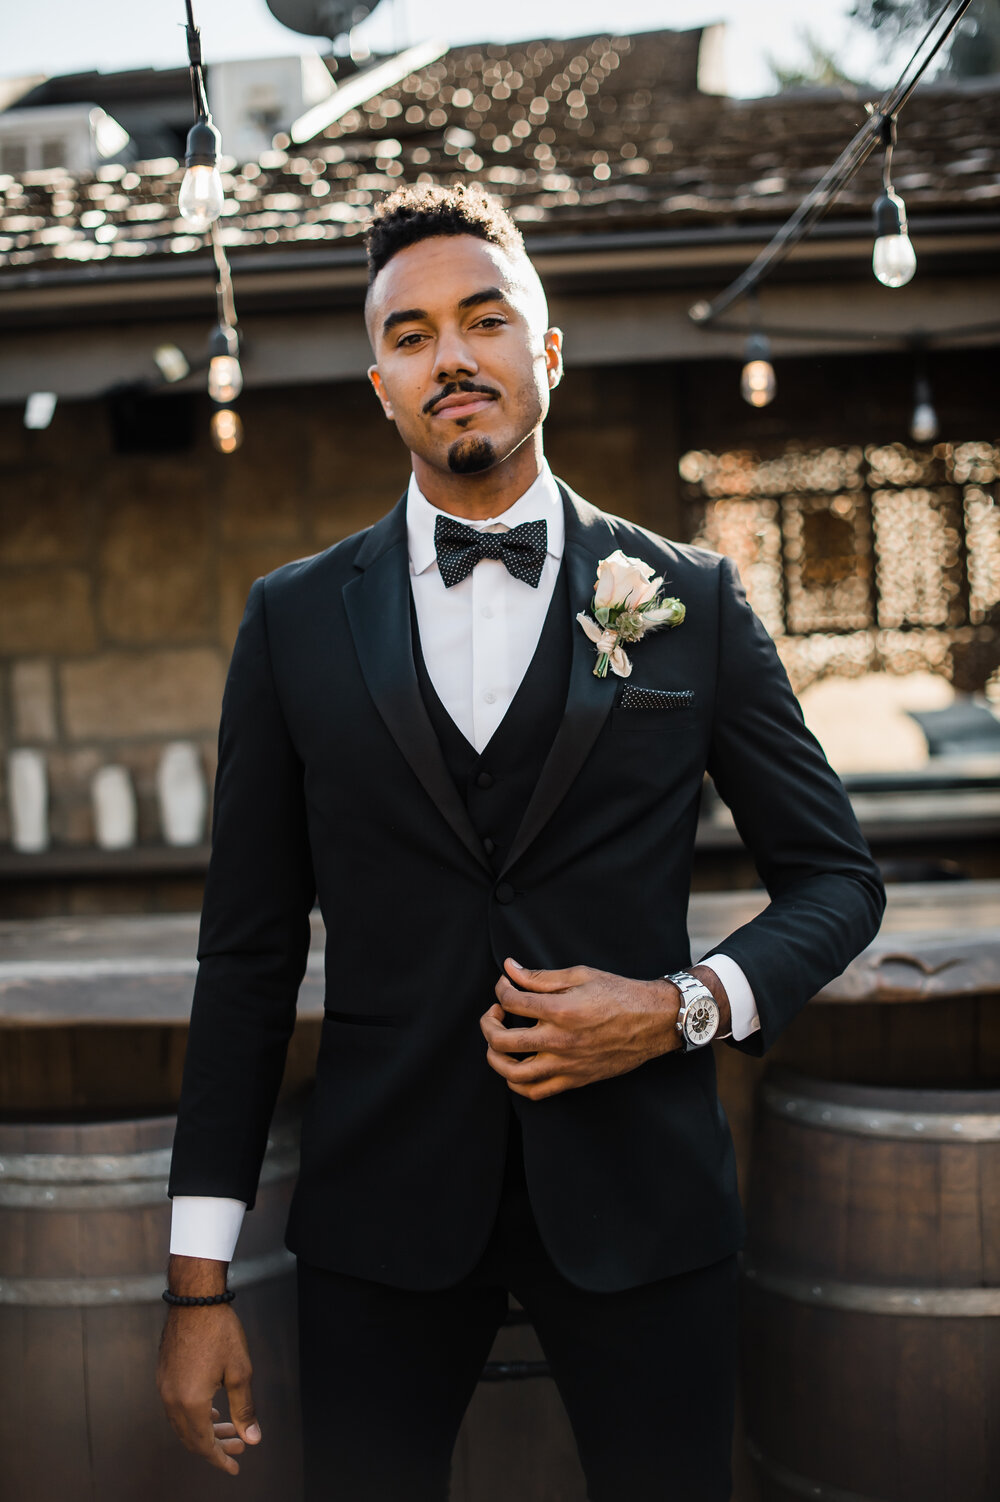 www.santabarbarawedding.com | The Tavern at Zaca Creek | Events by Fran | Michelle Ramirez Photography | Tangled Lotus | Friar Tux | Groom by the Bar